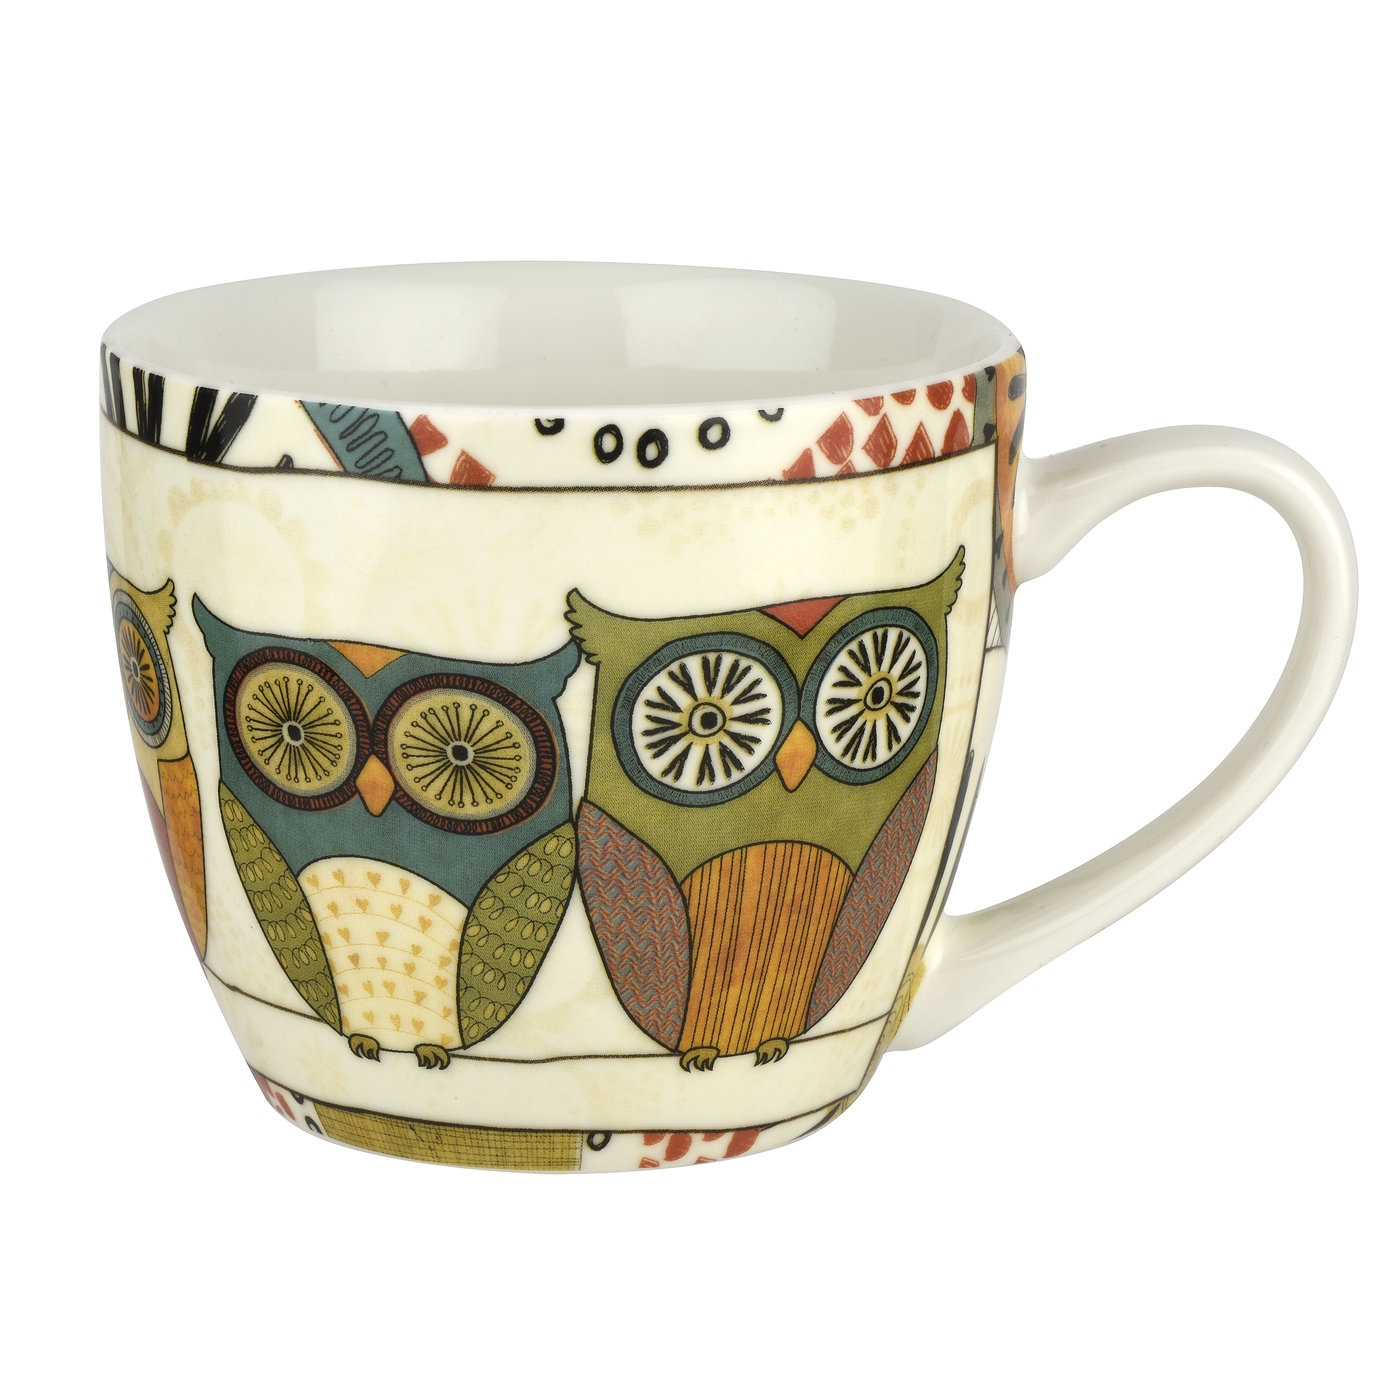 Pimpernel Spice Road 16 oz Mug image number 0